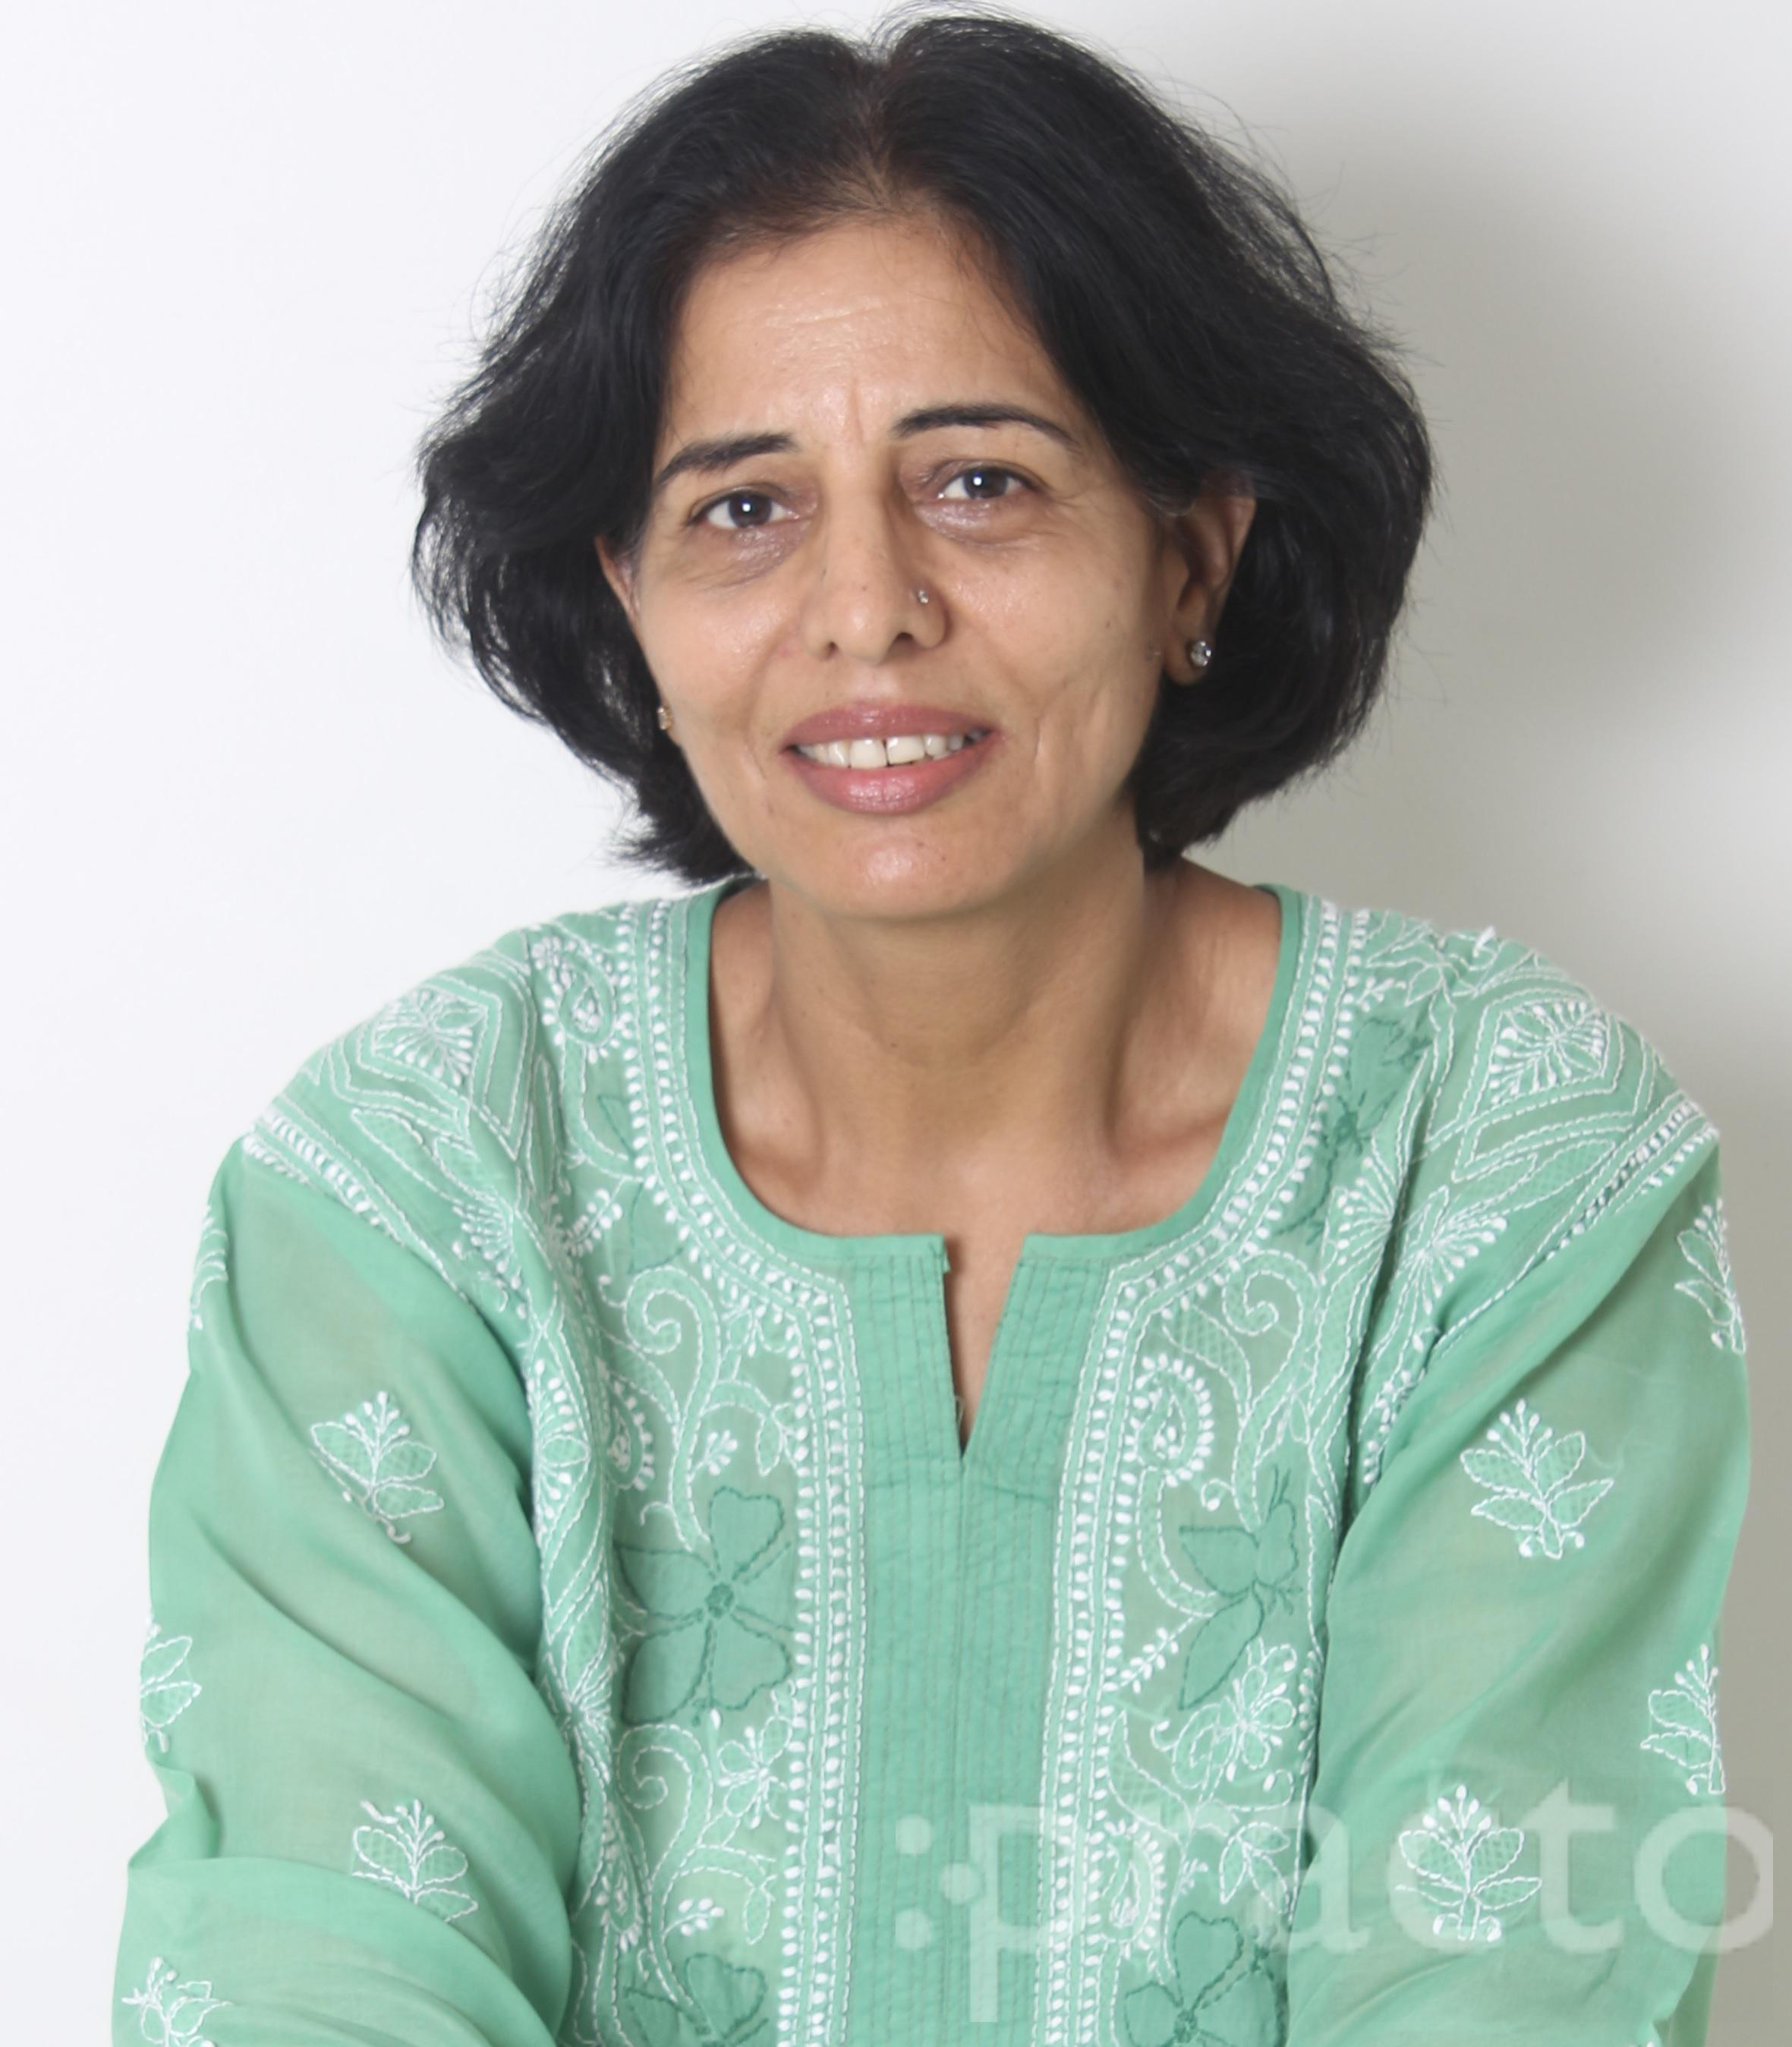 Dr. Suman Bishnoi - Gynecologist/Obstetrician